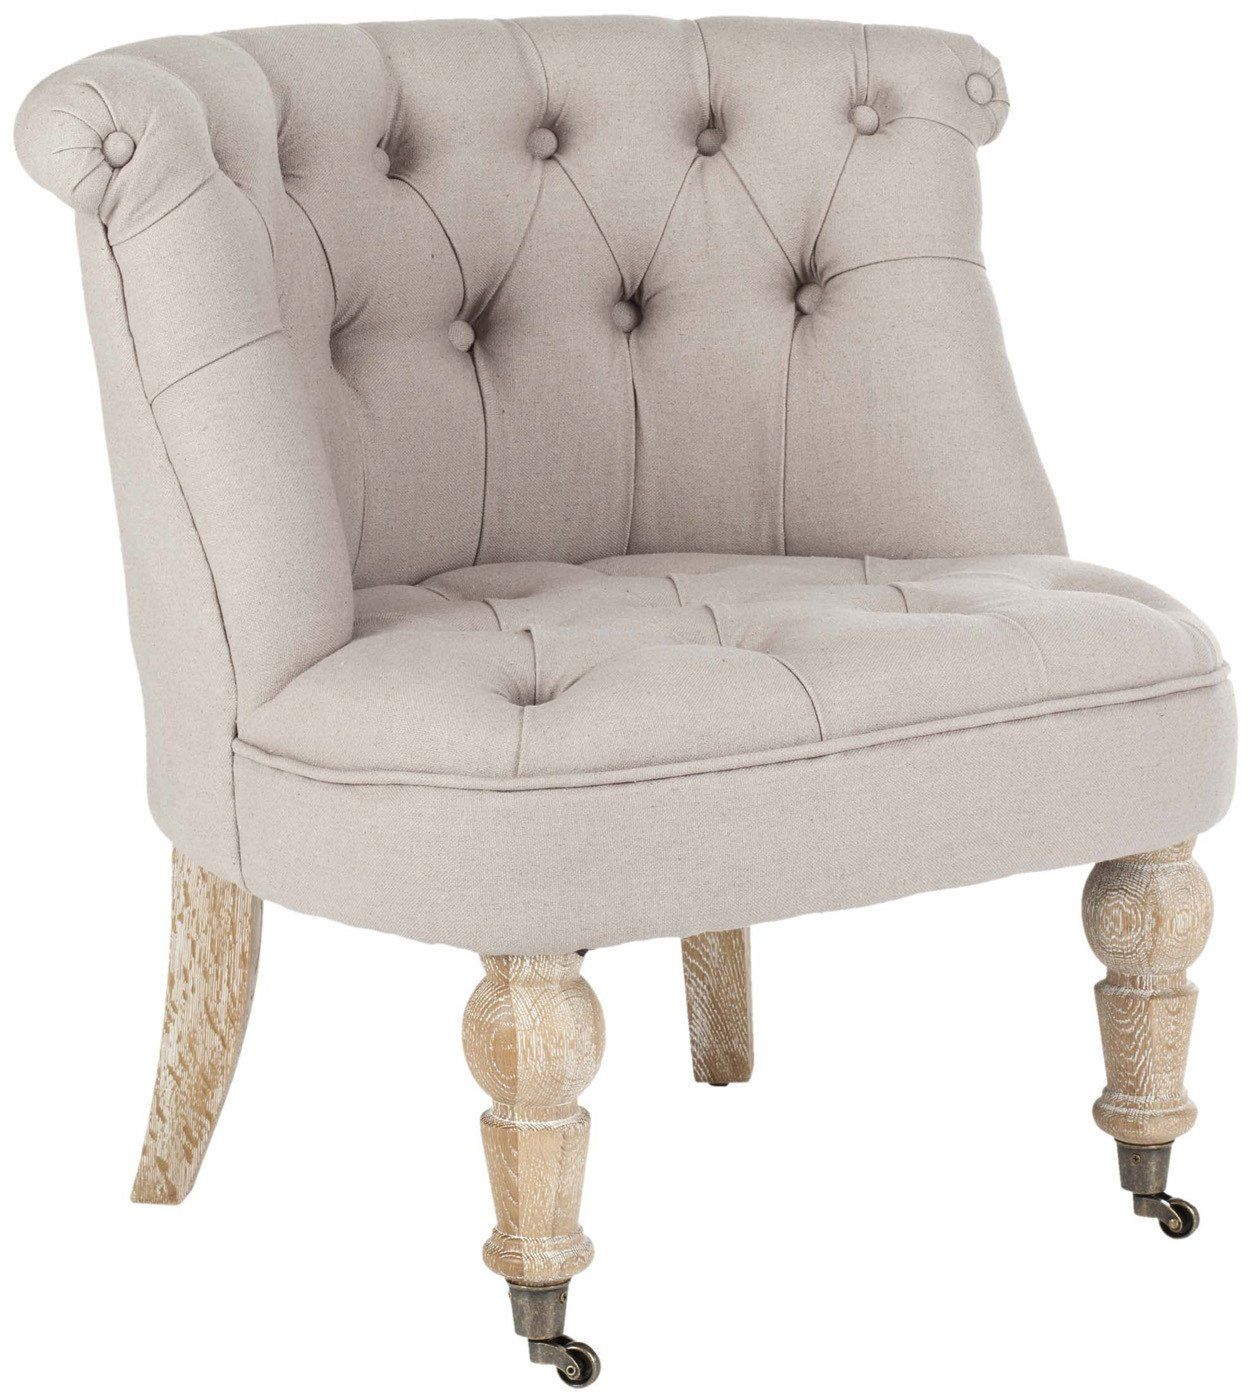 Taupe Accent Chairs.Buy Safavieh Hud8209b Baby Tufted Chair Taupe At Contemporary Furniture Warehouse